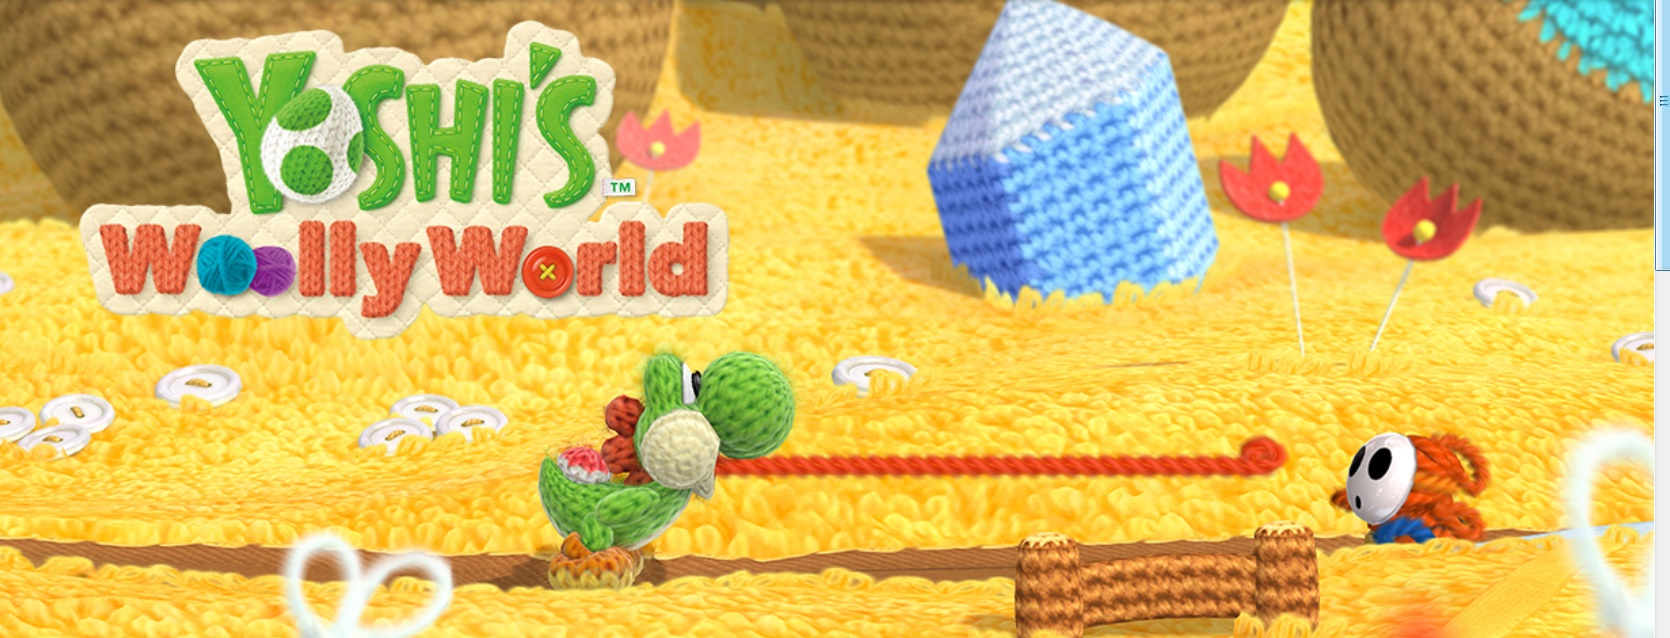 It Seems The European Release Dates For Splatoon And Yoshi's Wooly World Have Been Leaked